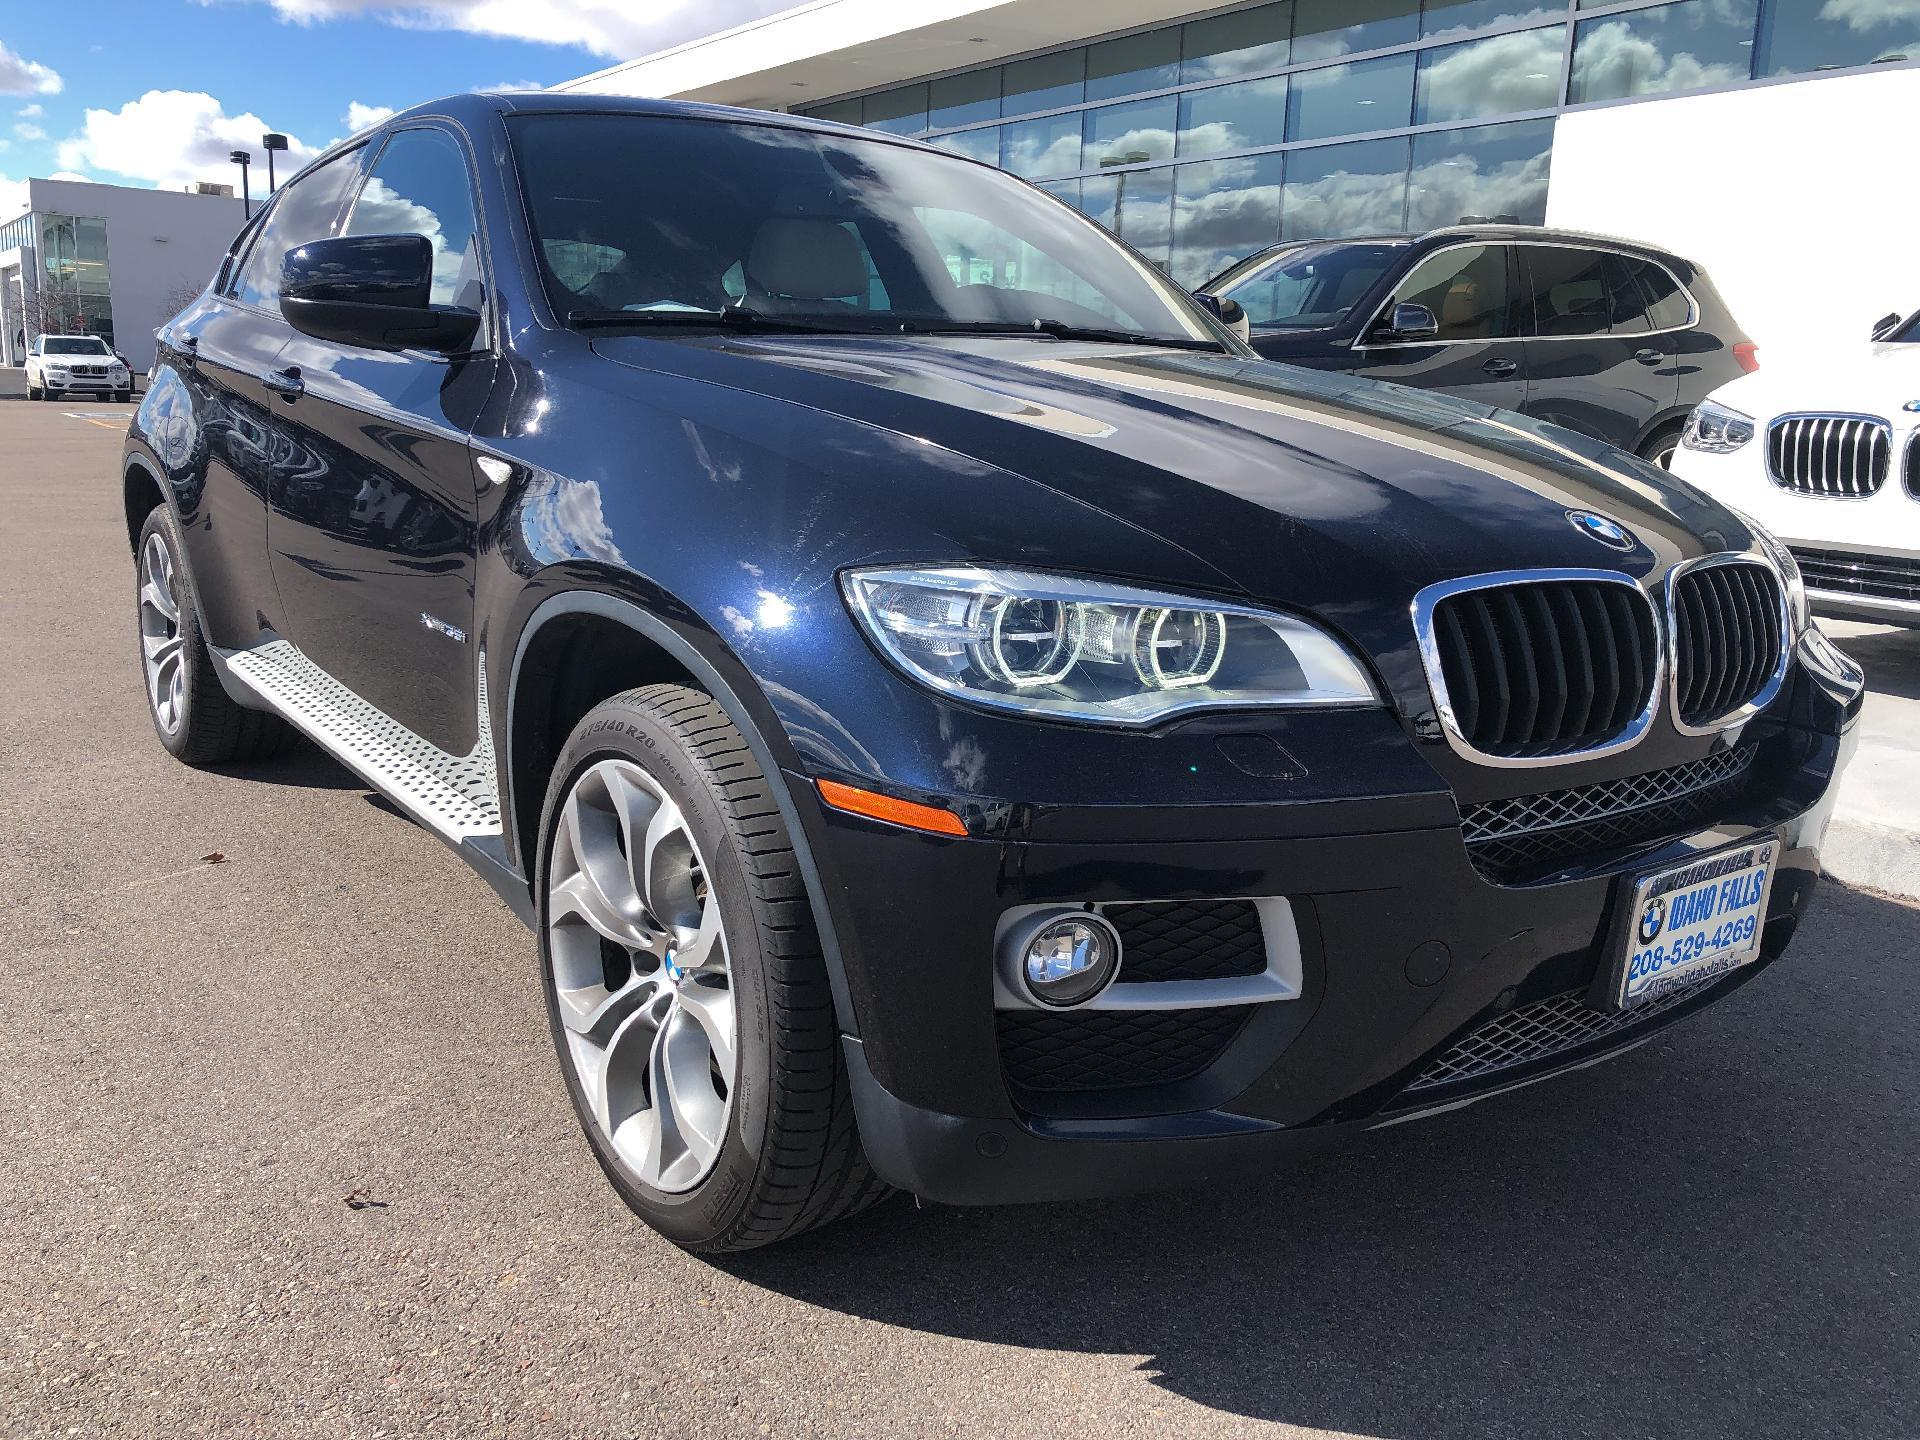 Pre-Owned 2013 BMW X6 xDrive35i AWD 4dr SUV